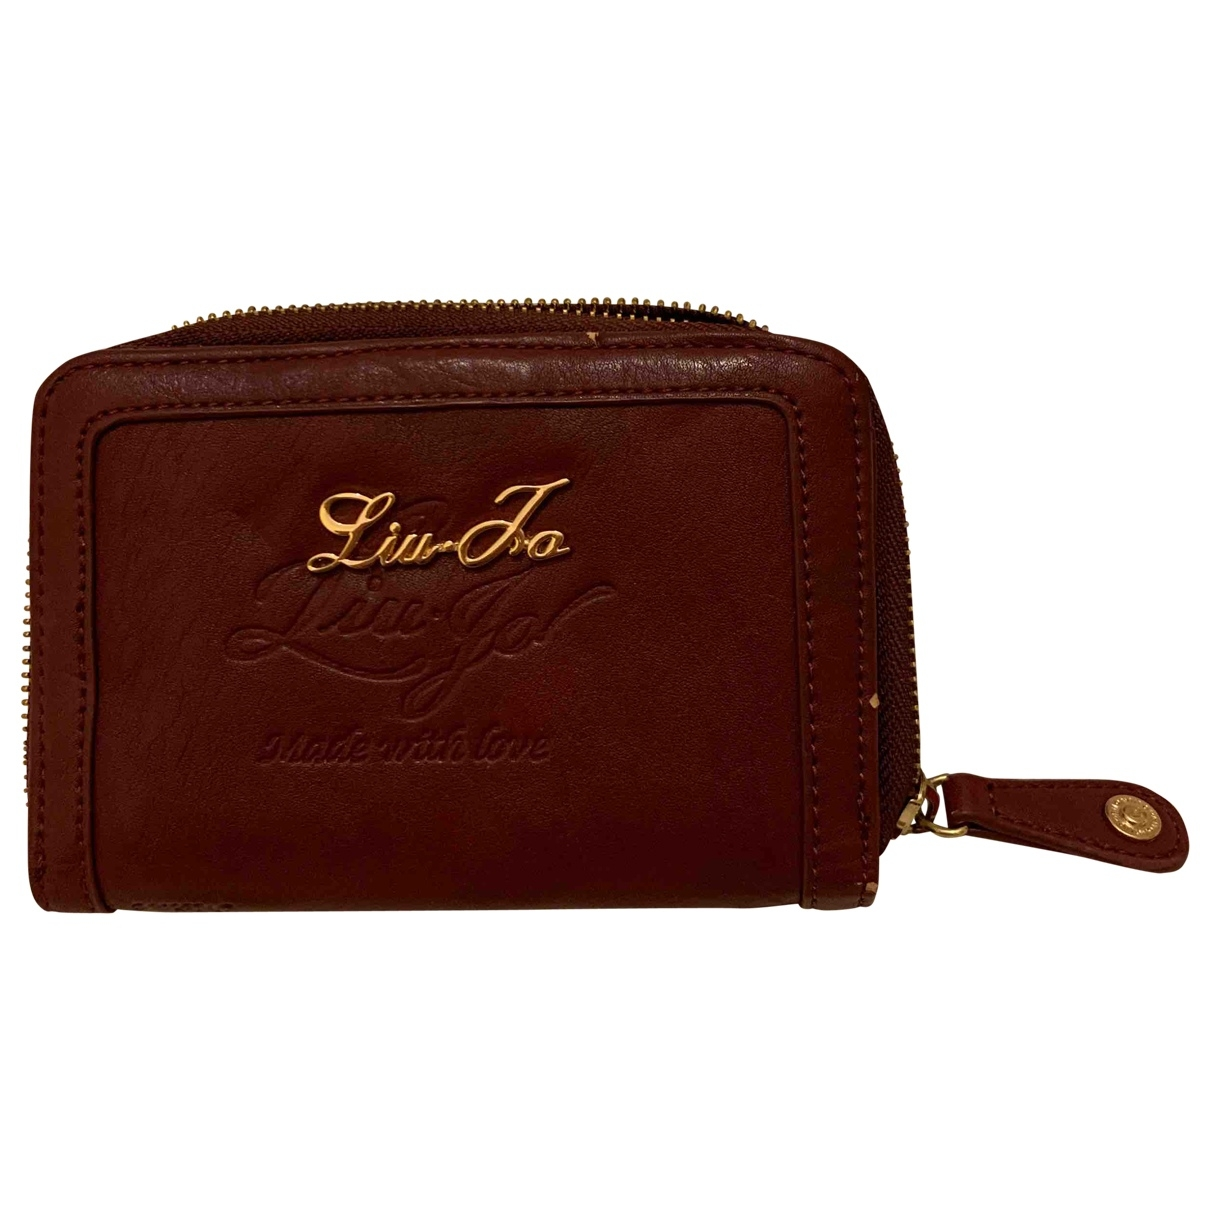 Liu.jo \N Burgundy Leather wallet for Women \N